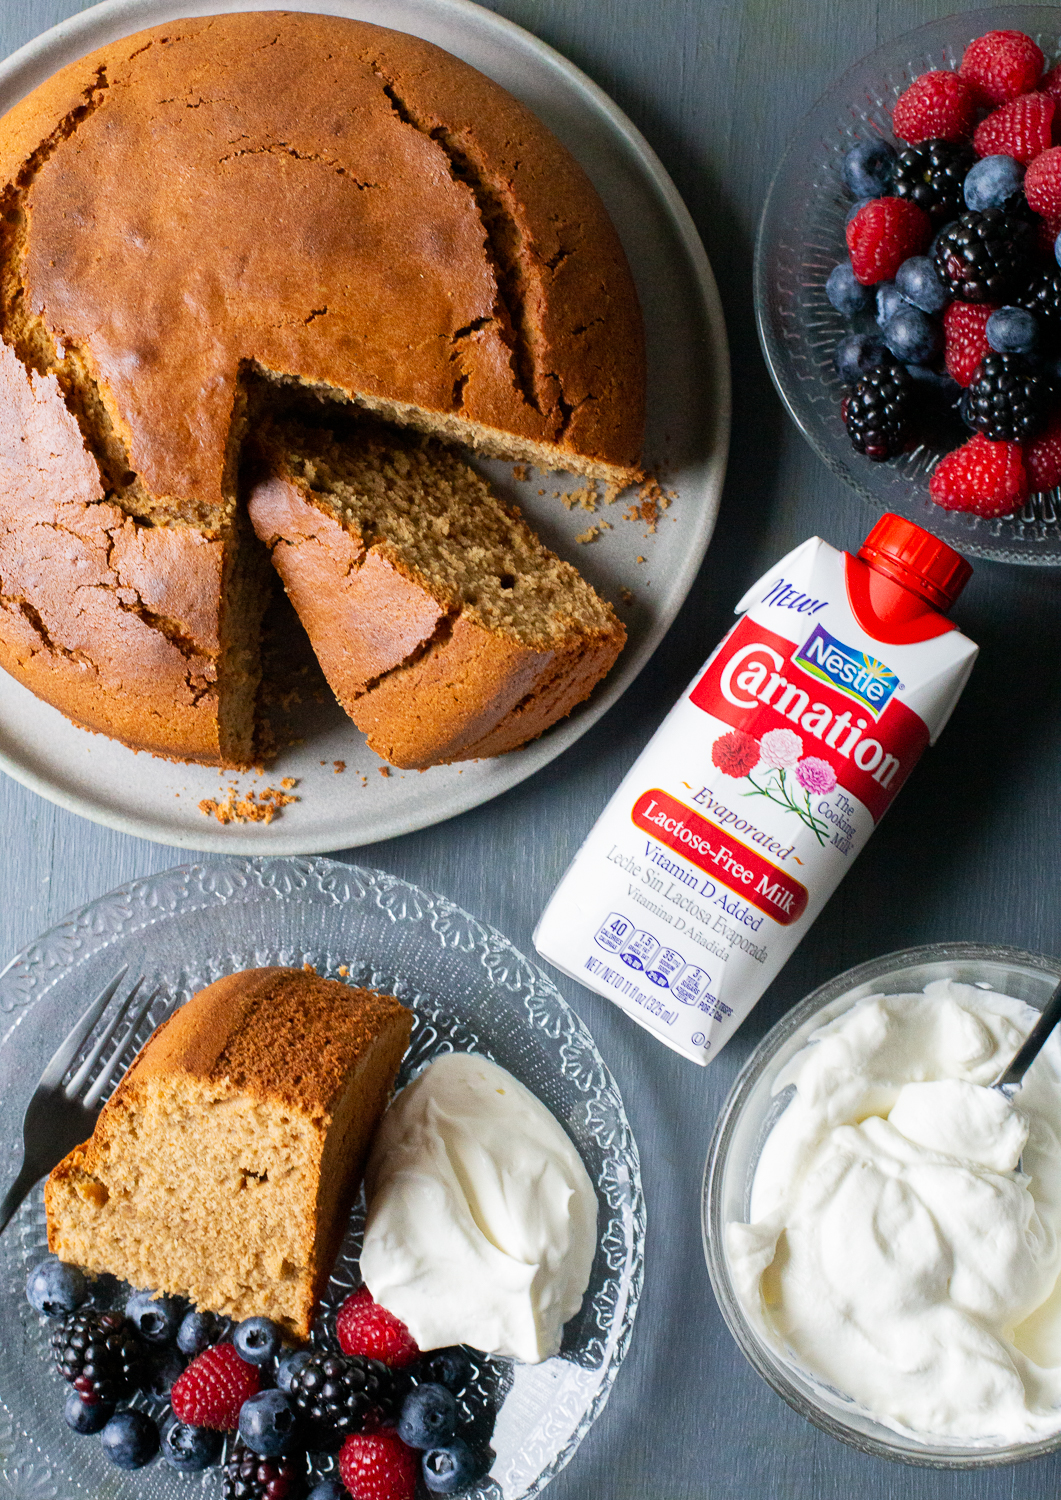 Cafe Latte Pound Cake with Evaporated Milk